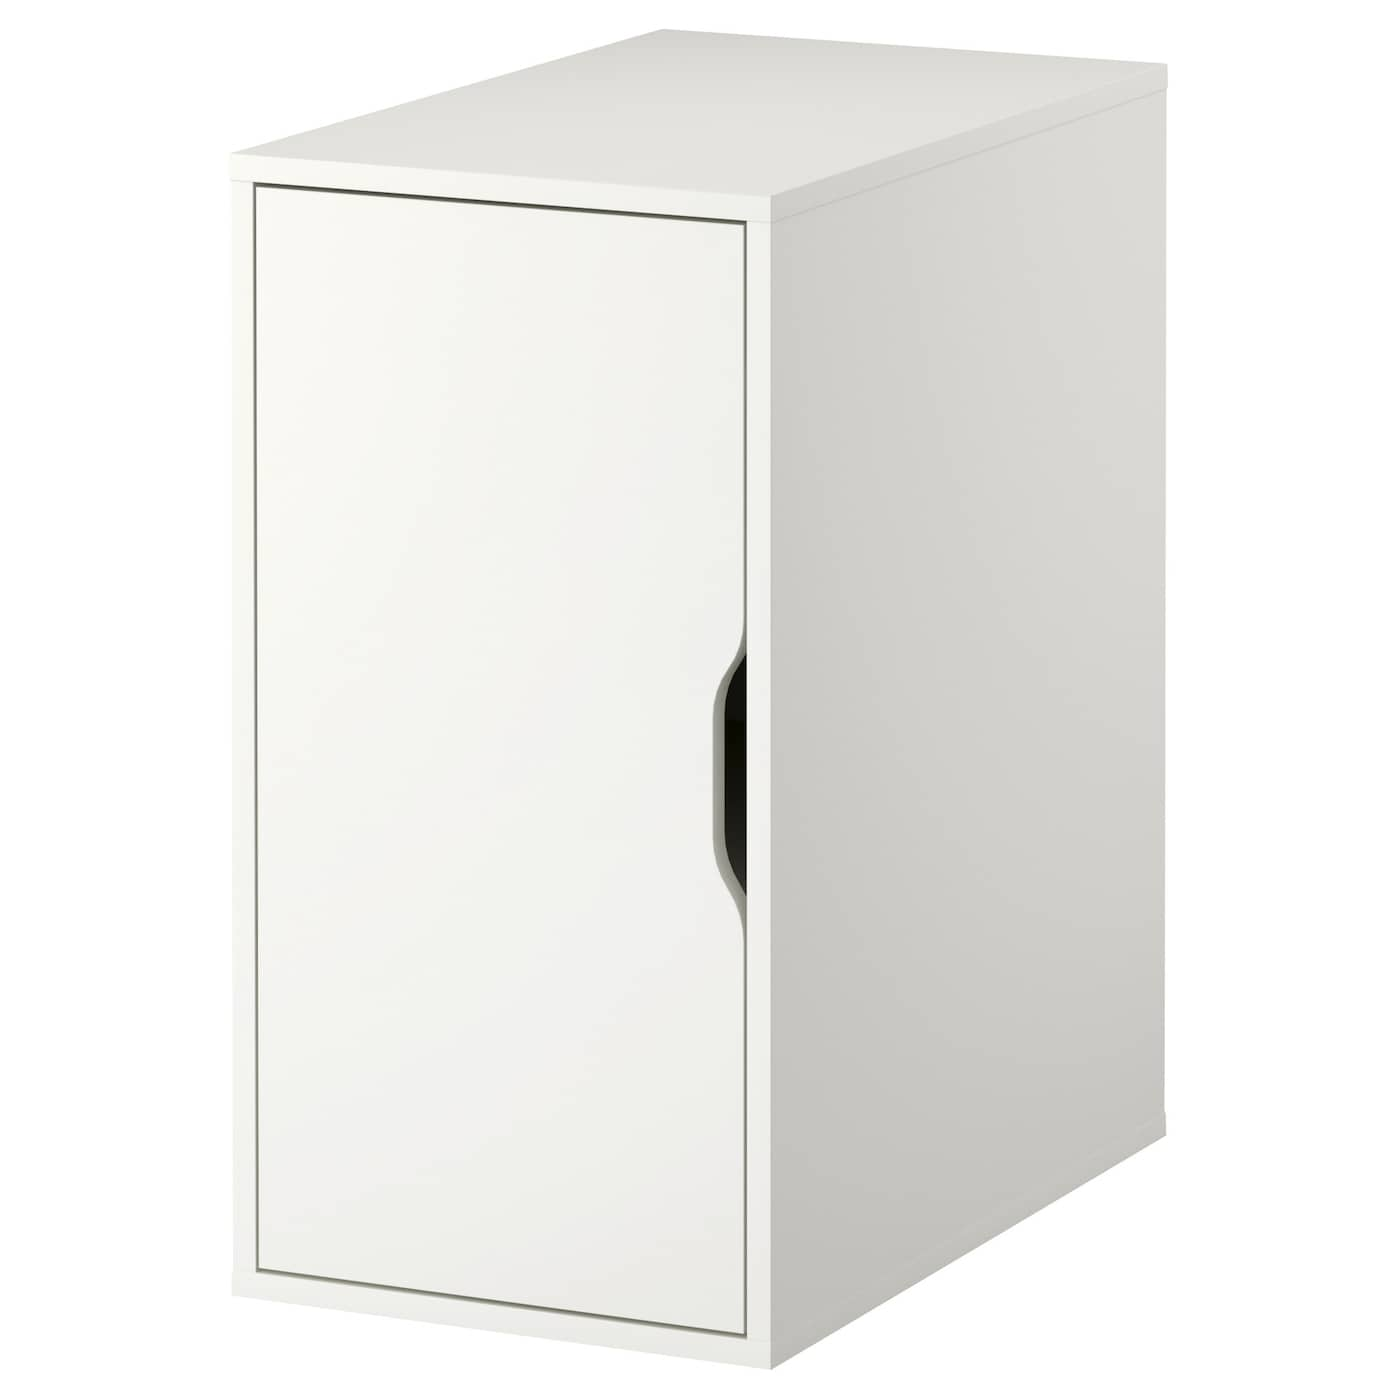 ikea alex cabinet alex storage unit white 36x70 cm ikea 17517